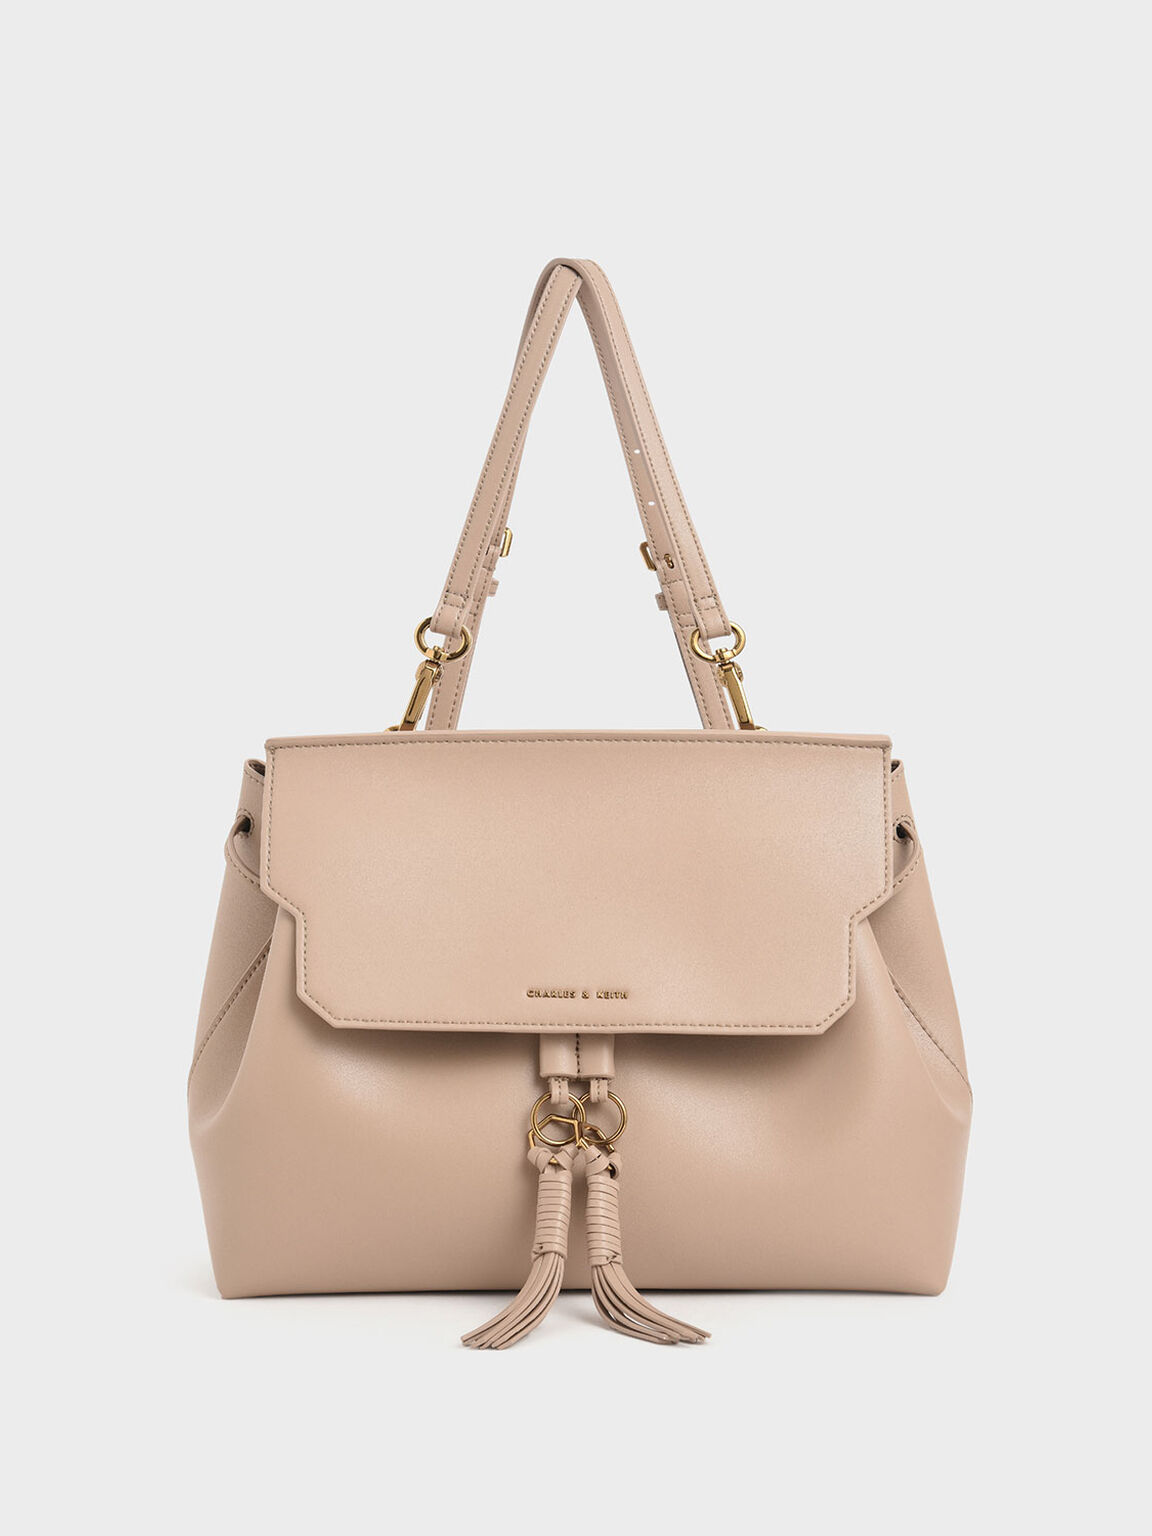 Tassel Shoulder Bag, Beige, hi-res